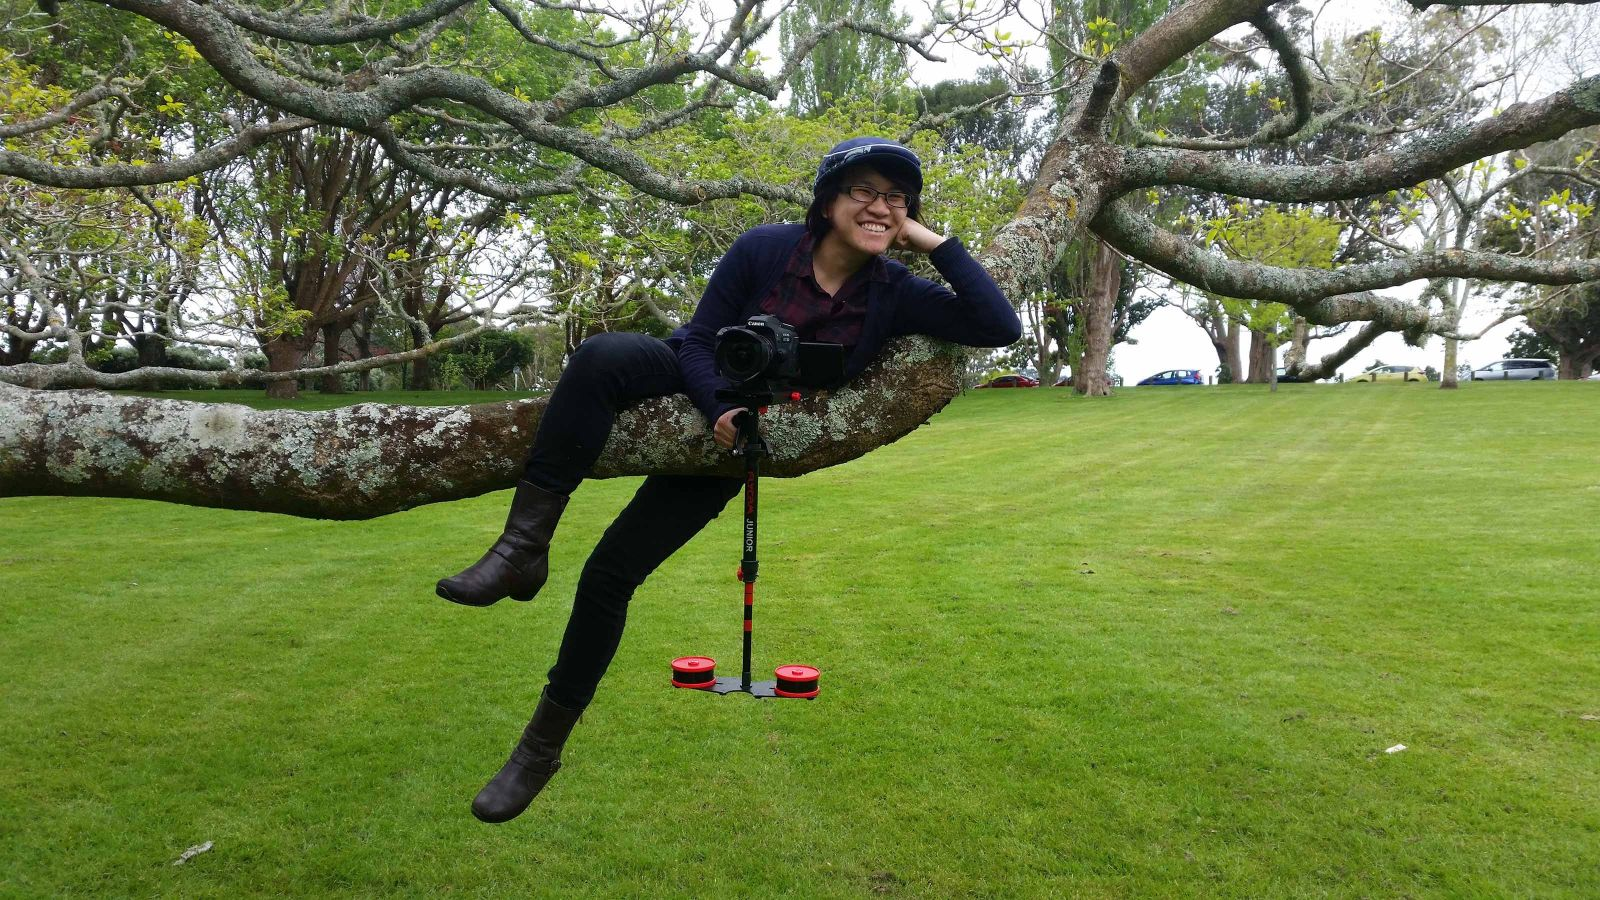 Michelle Kan from Fish and Swallow, perched in a tree holding a camera.